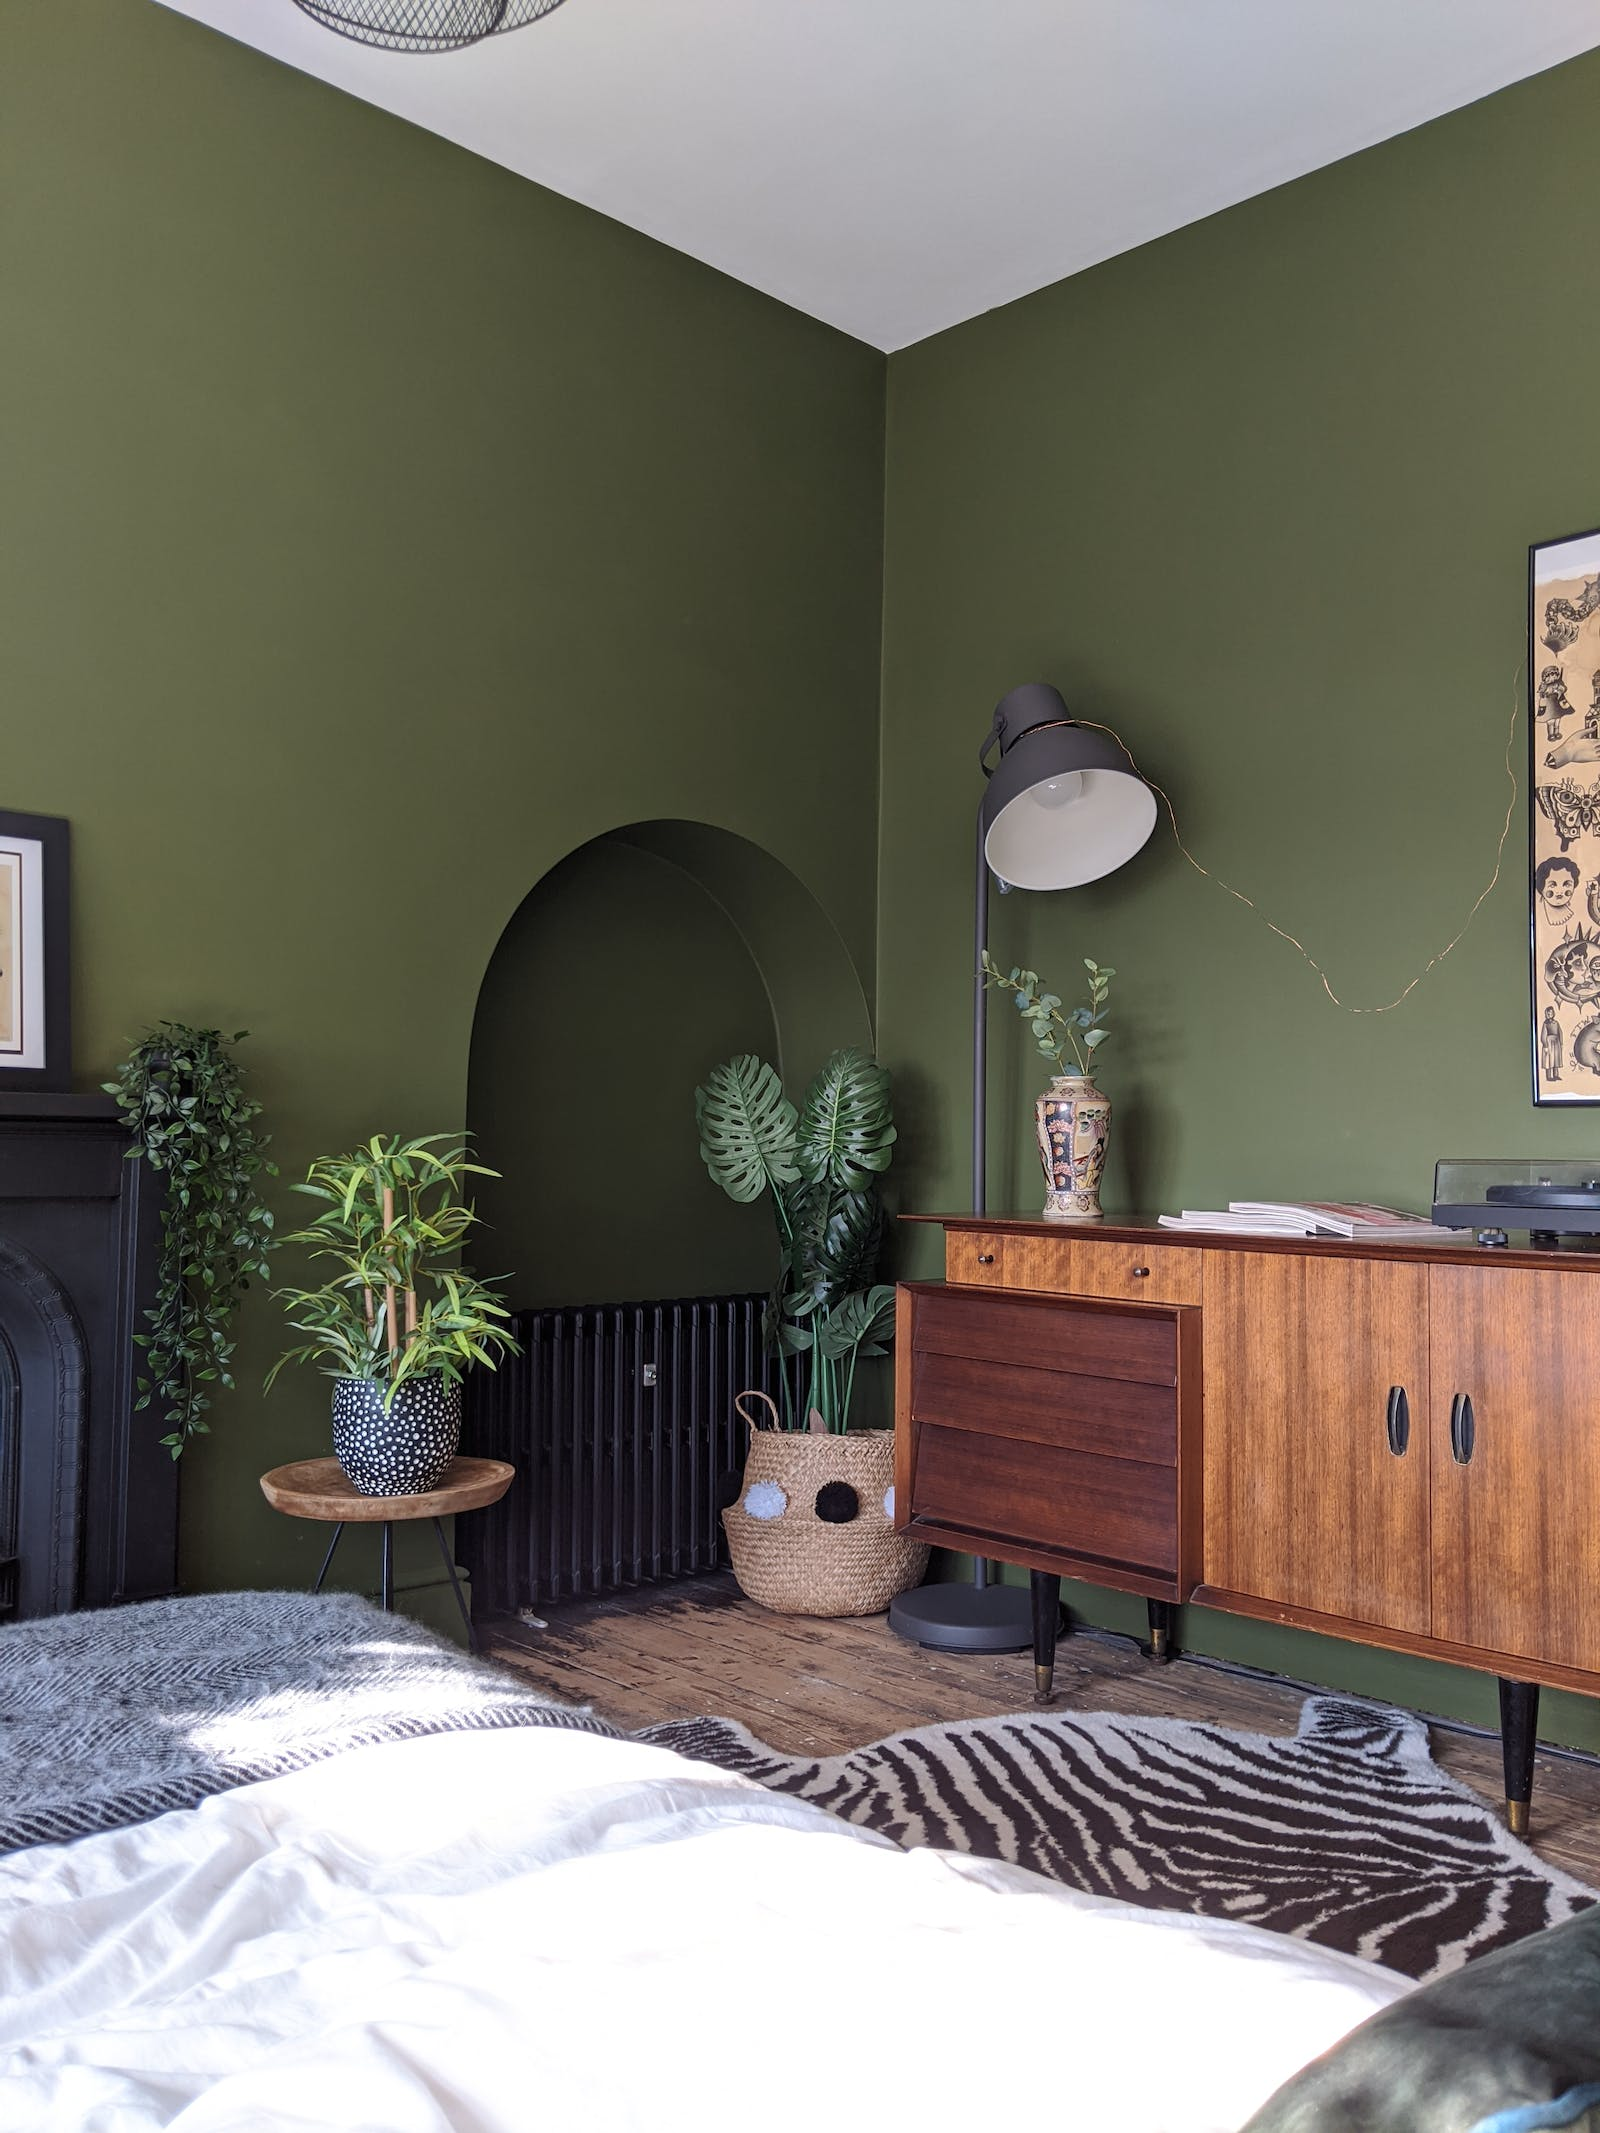 Bedroom in Lick Green 05 decorated with plants